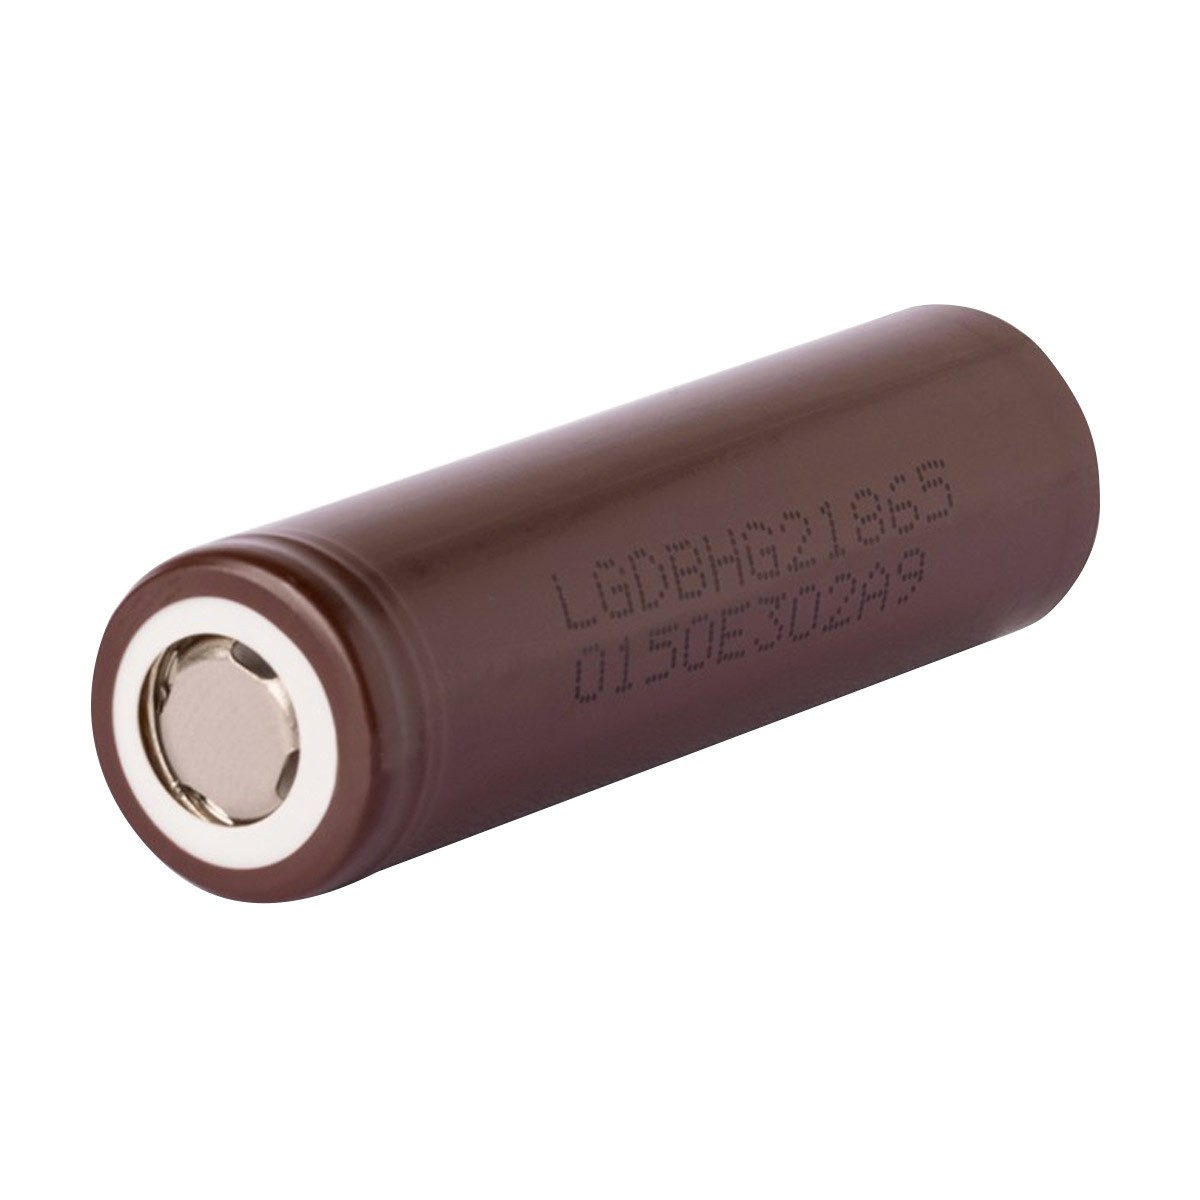 LG ELECTRONICS INR18650HG2 Rechargeable Battery Lithium-Ion 18650 3.6V 3000mAh